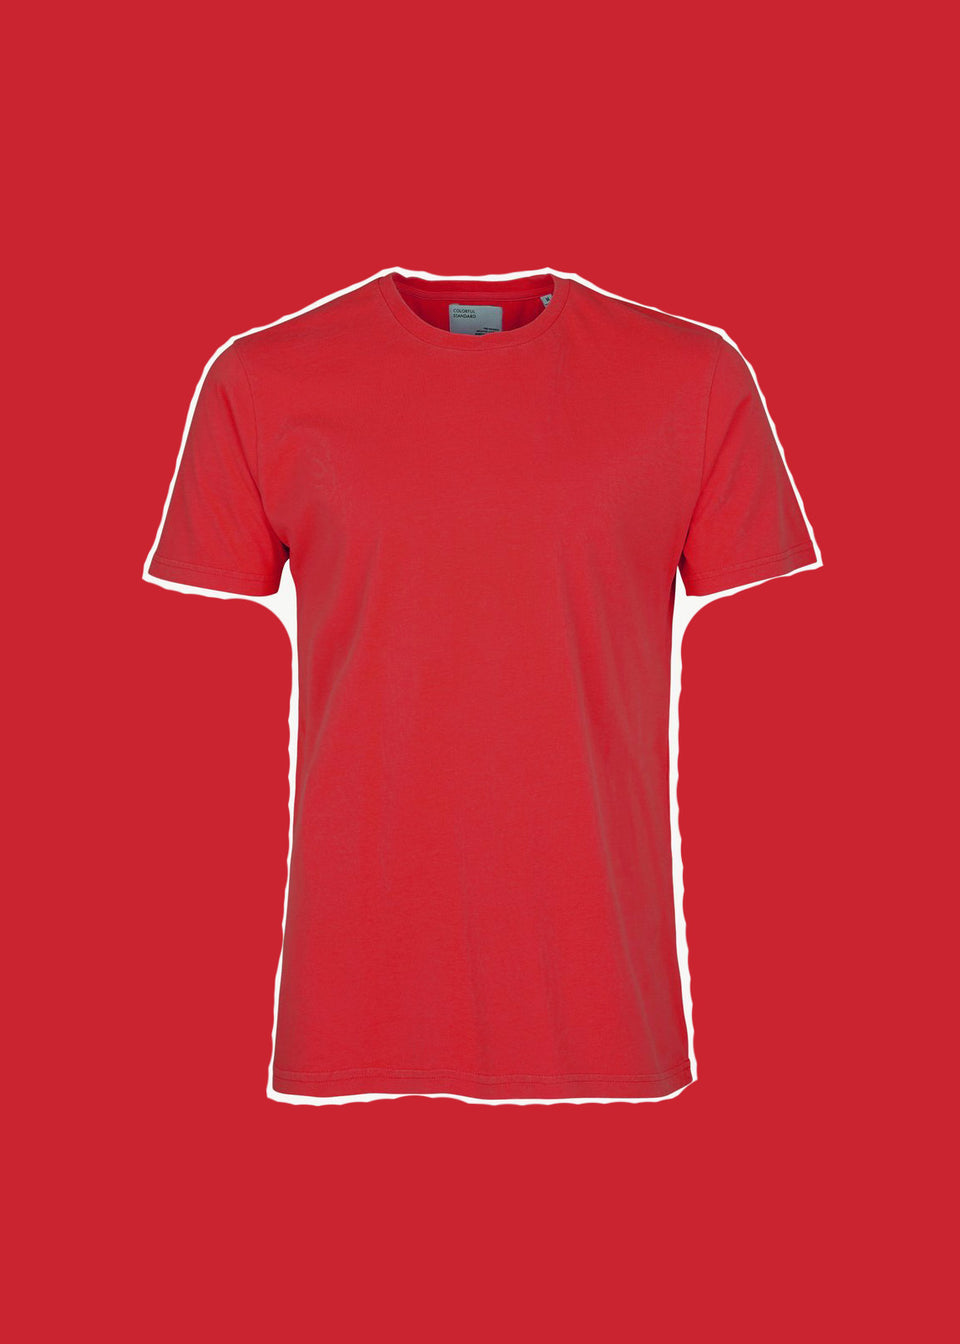 COLORFUL STANDARD • T-shirt Coton bio Rouge